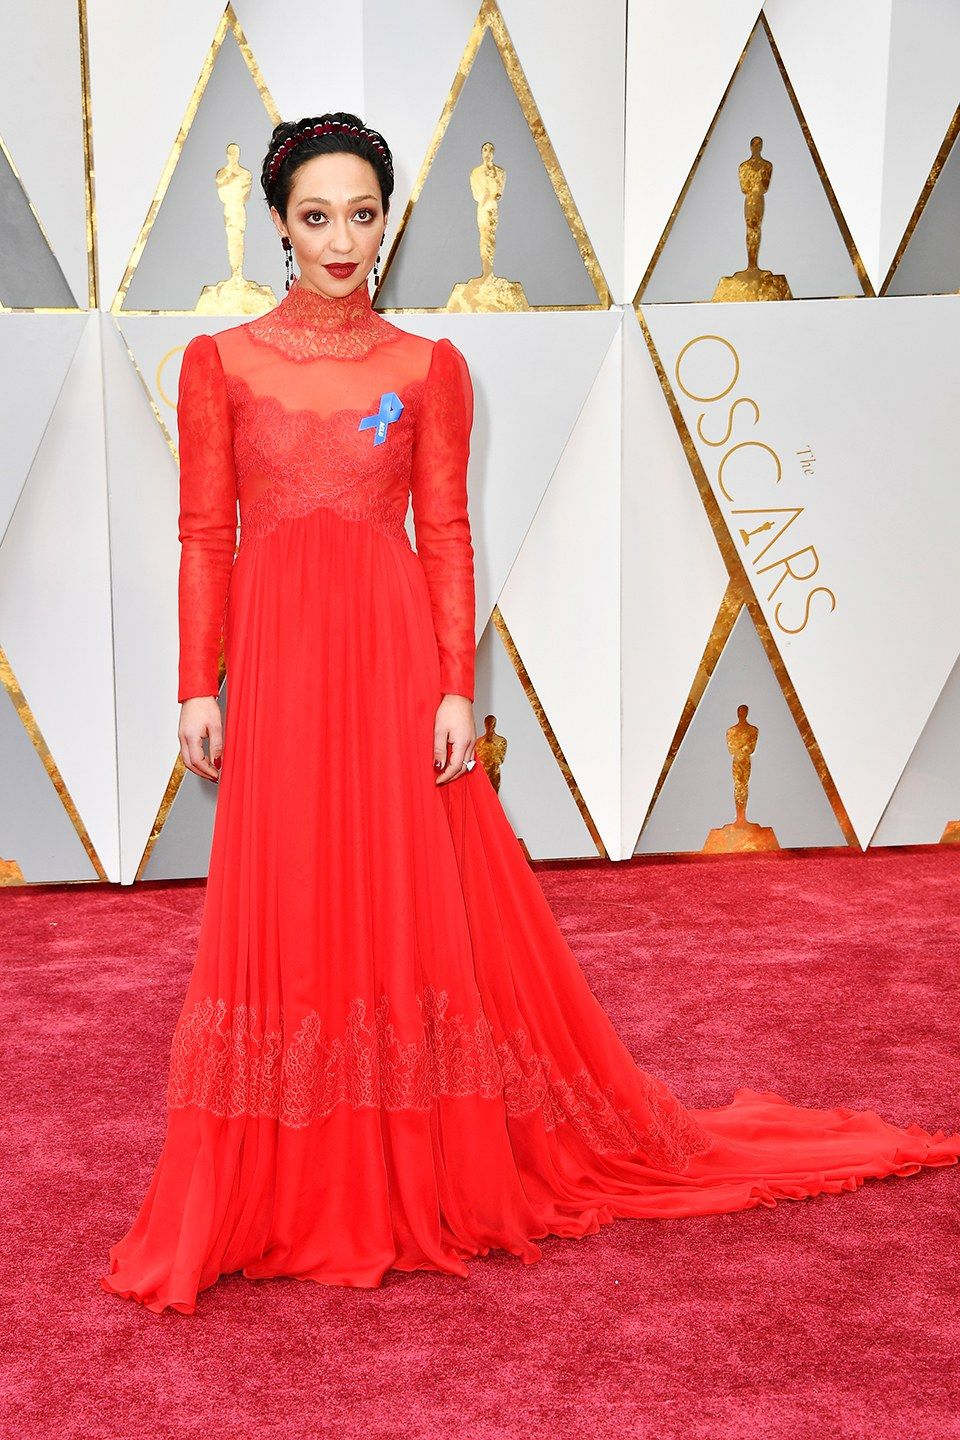 Oscars red carpet fashion all the looks from hollywoodus